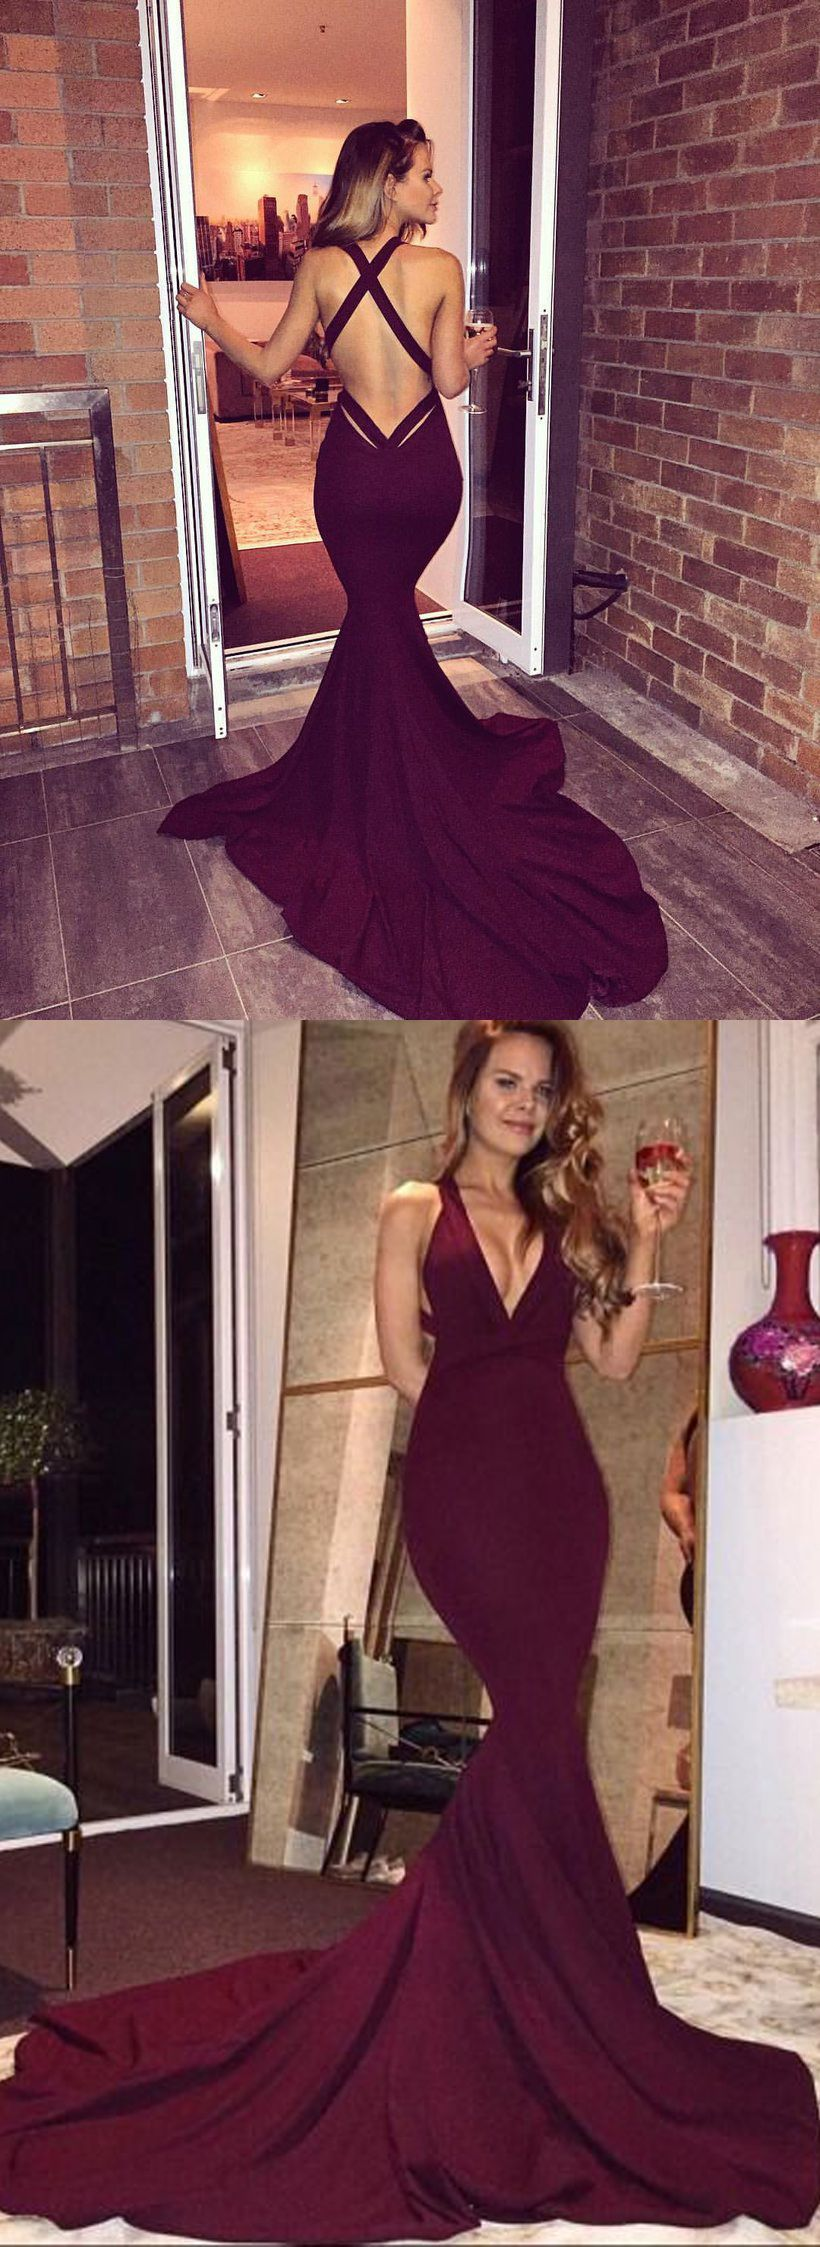 Elegant long prom dresses burgundy long prom dresses long